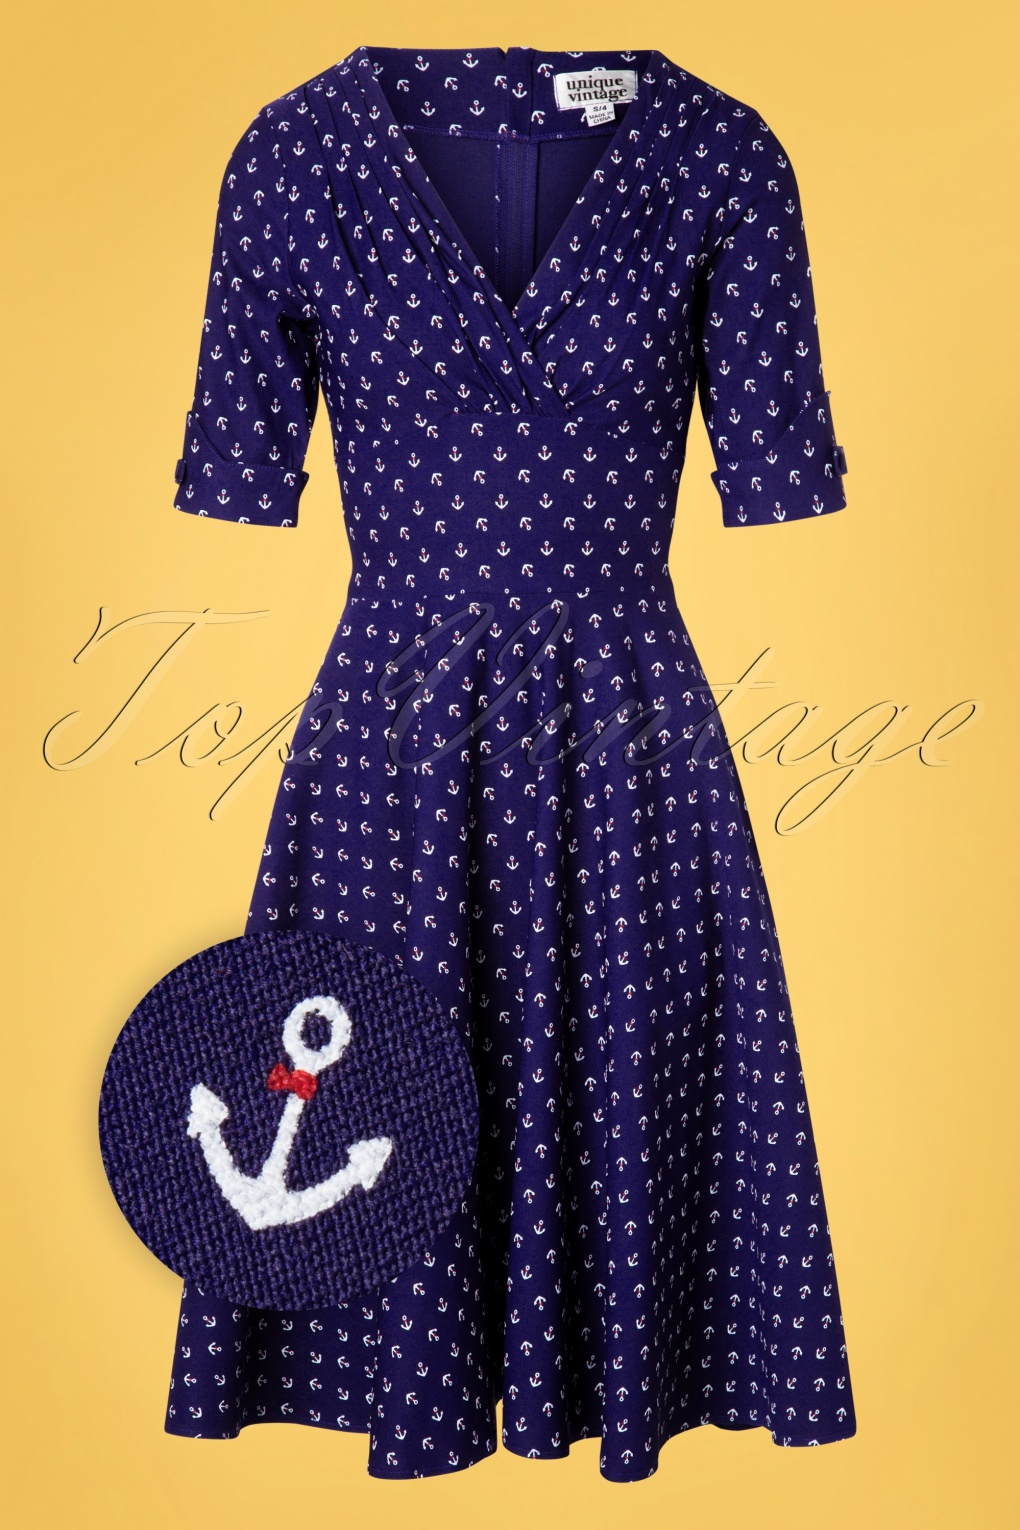 1950s Dresses, 50s Dresses | 1950s Style Dresses 50s Delores Anchor Swing Dress in Royal Blue £113.69 AT vintagedancer.com